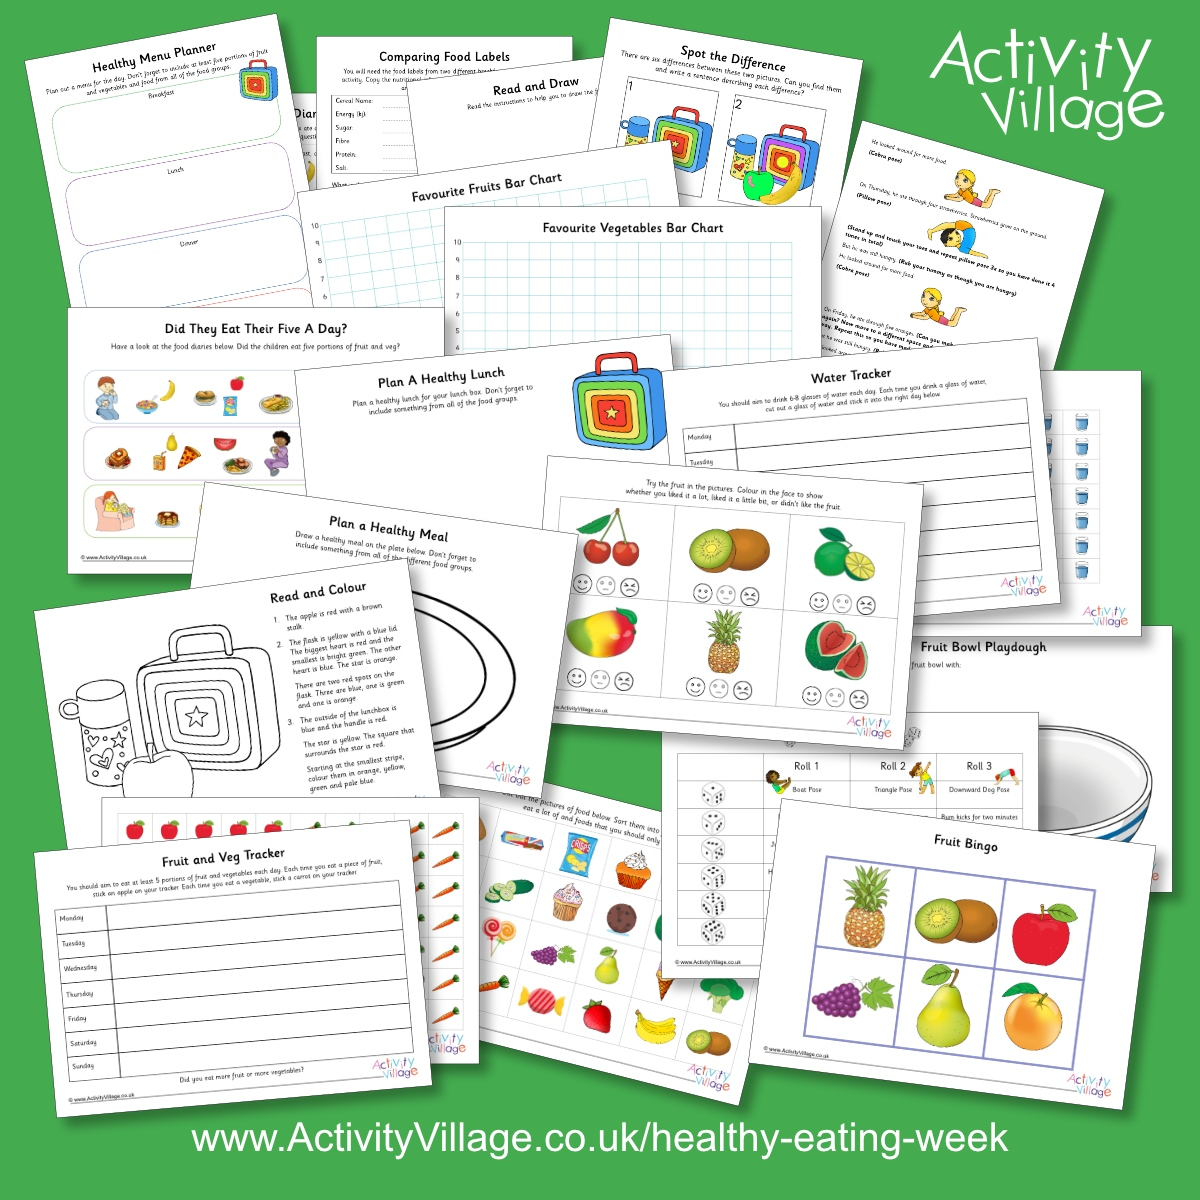 Activity Village On Twitter This Year For The First Time We Are Featuring Healthy Eating Week Which Runs From 14th To 18th June And Encourages Us All To Look At All Aspects